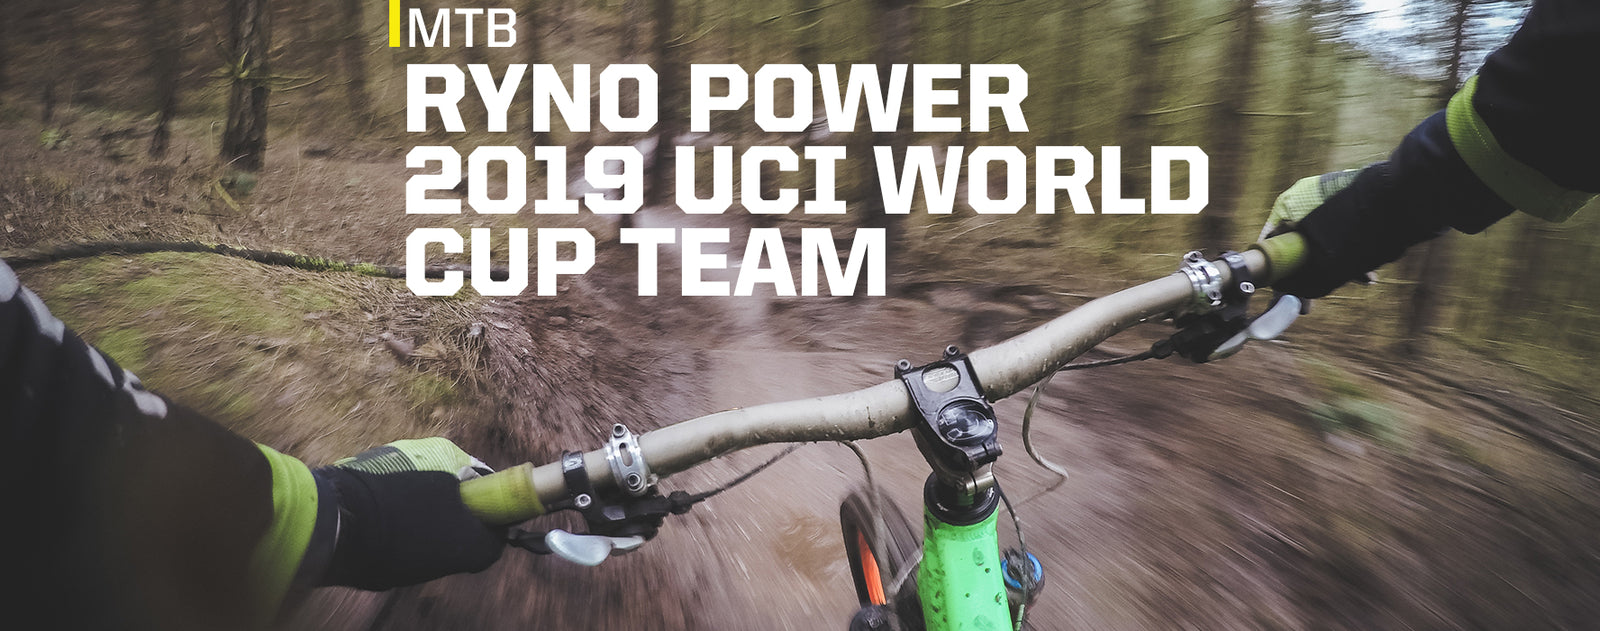 Ryno Power Announces Our 2019 UCI World Cup Team